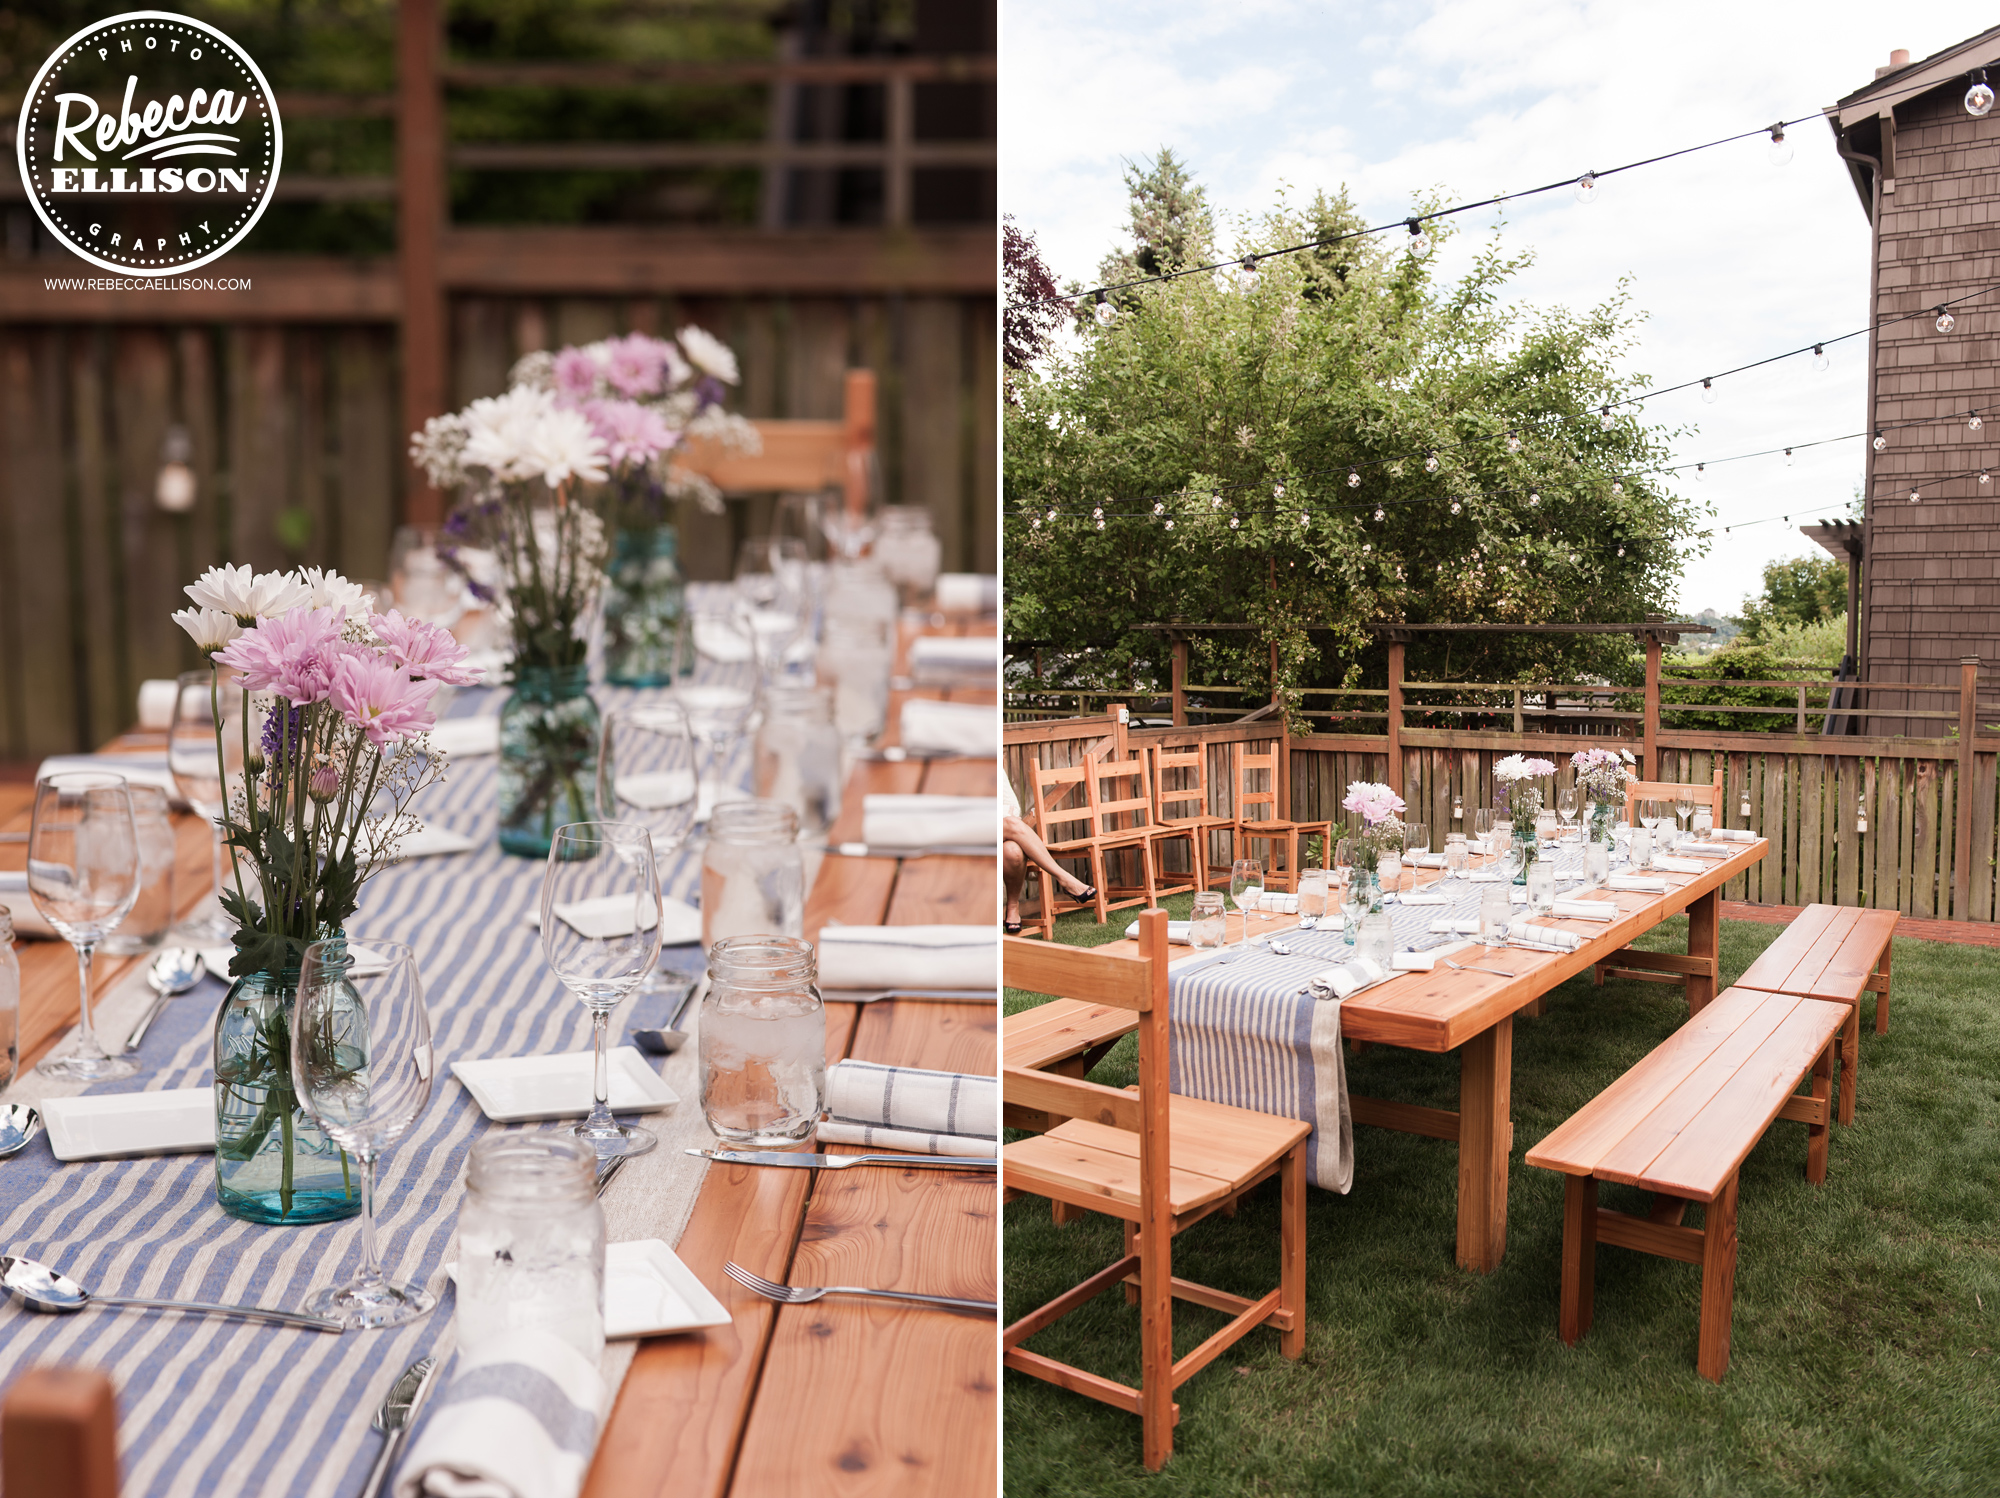 Hot wedding trends for 2015 - wooden farm tables